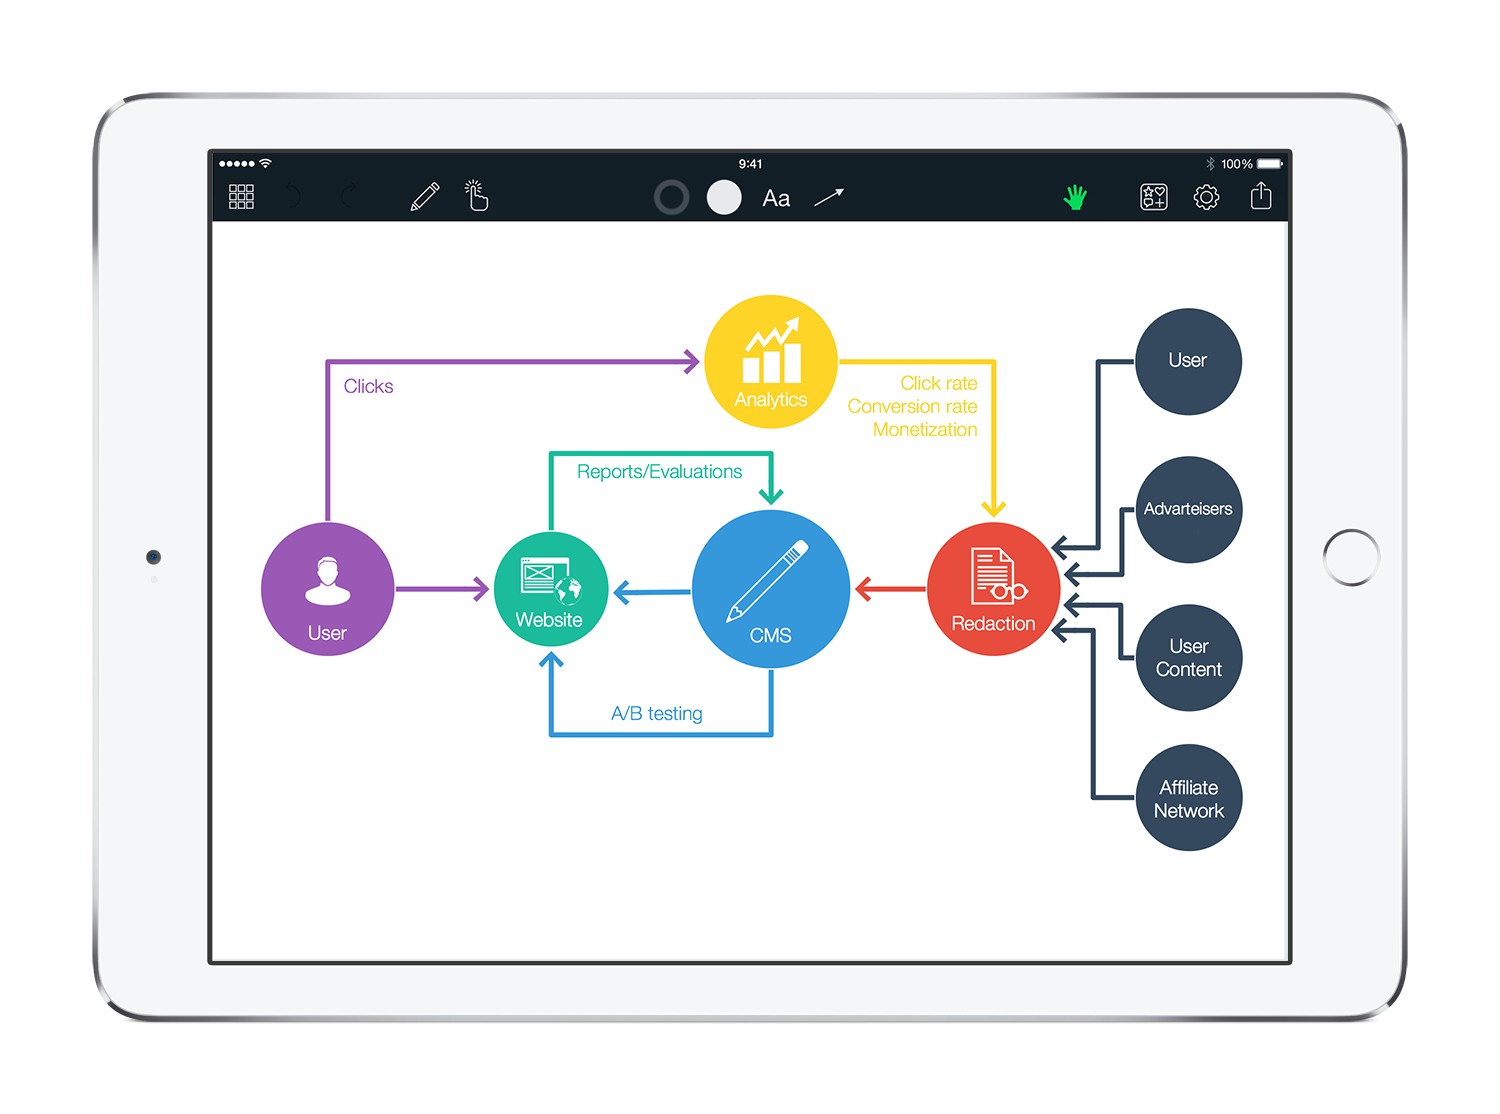 Diagramming ipad pro auto electrical wiring diagram grafio diagrams and ideas rh tentouchapps com diagramming tool ipad pro diagramming tool ipad pro ccuart Image collections